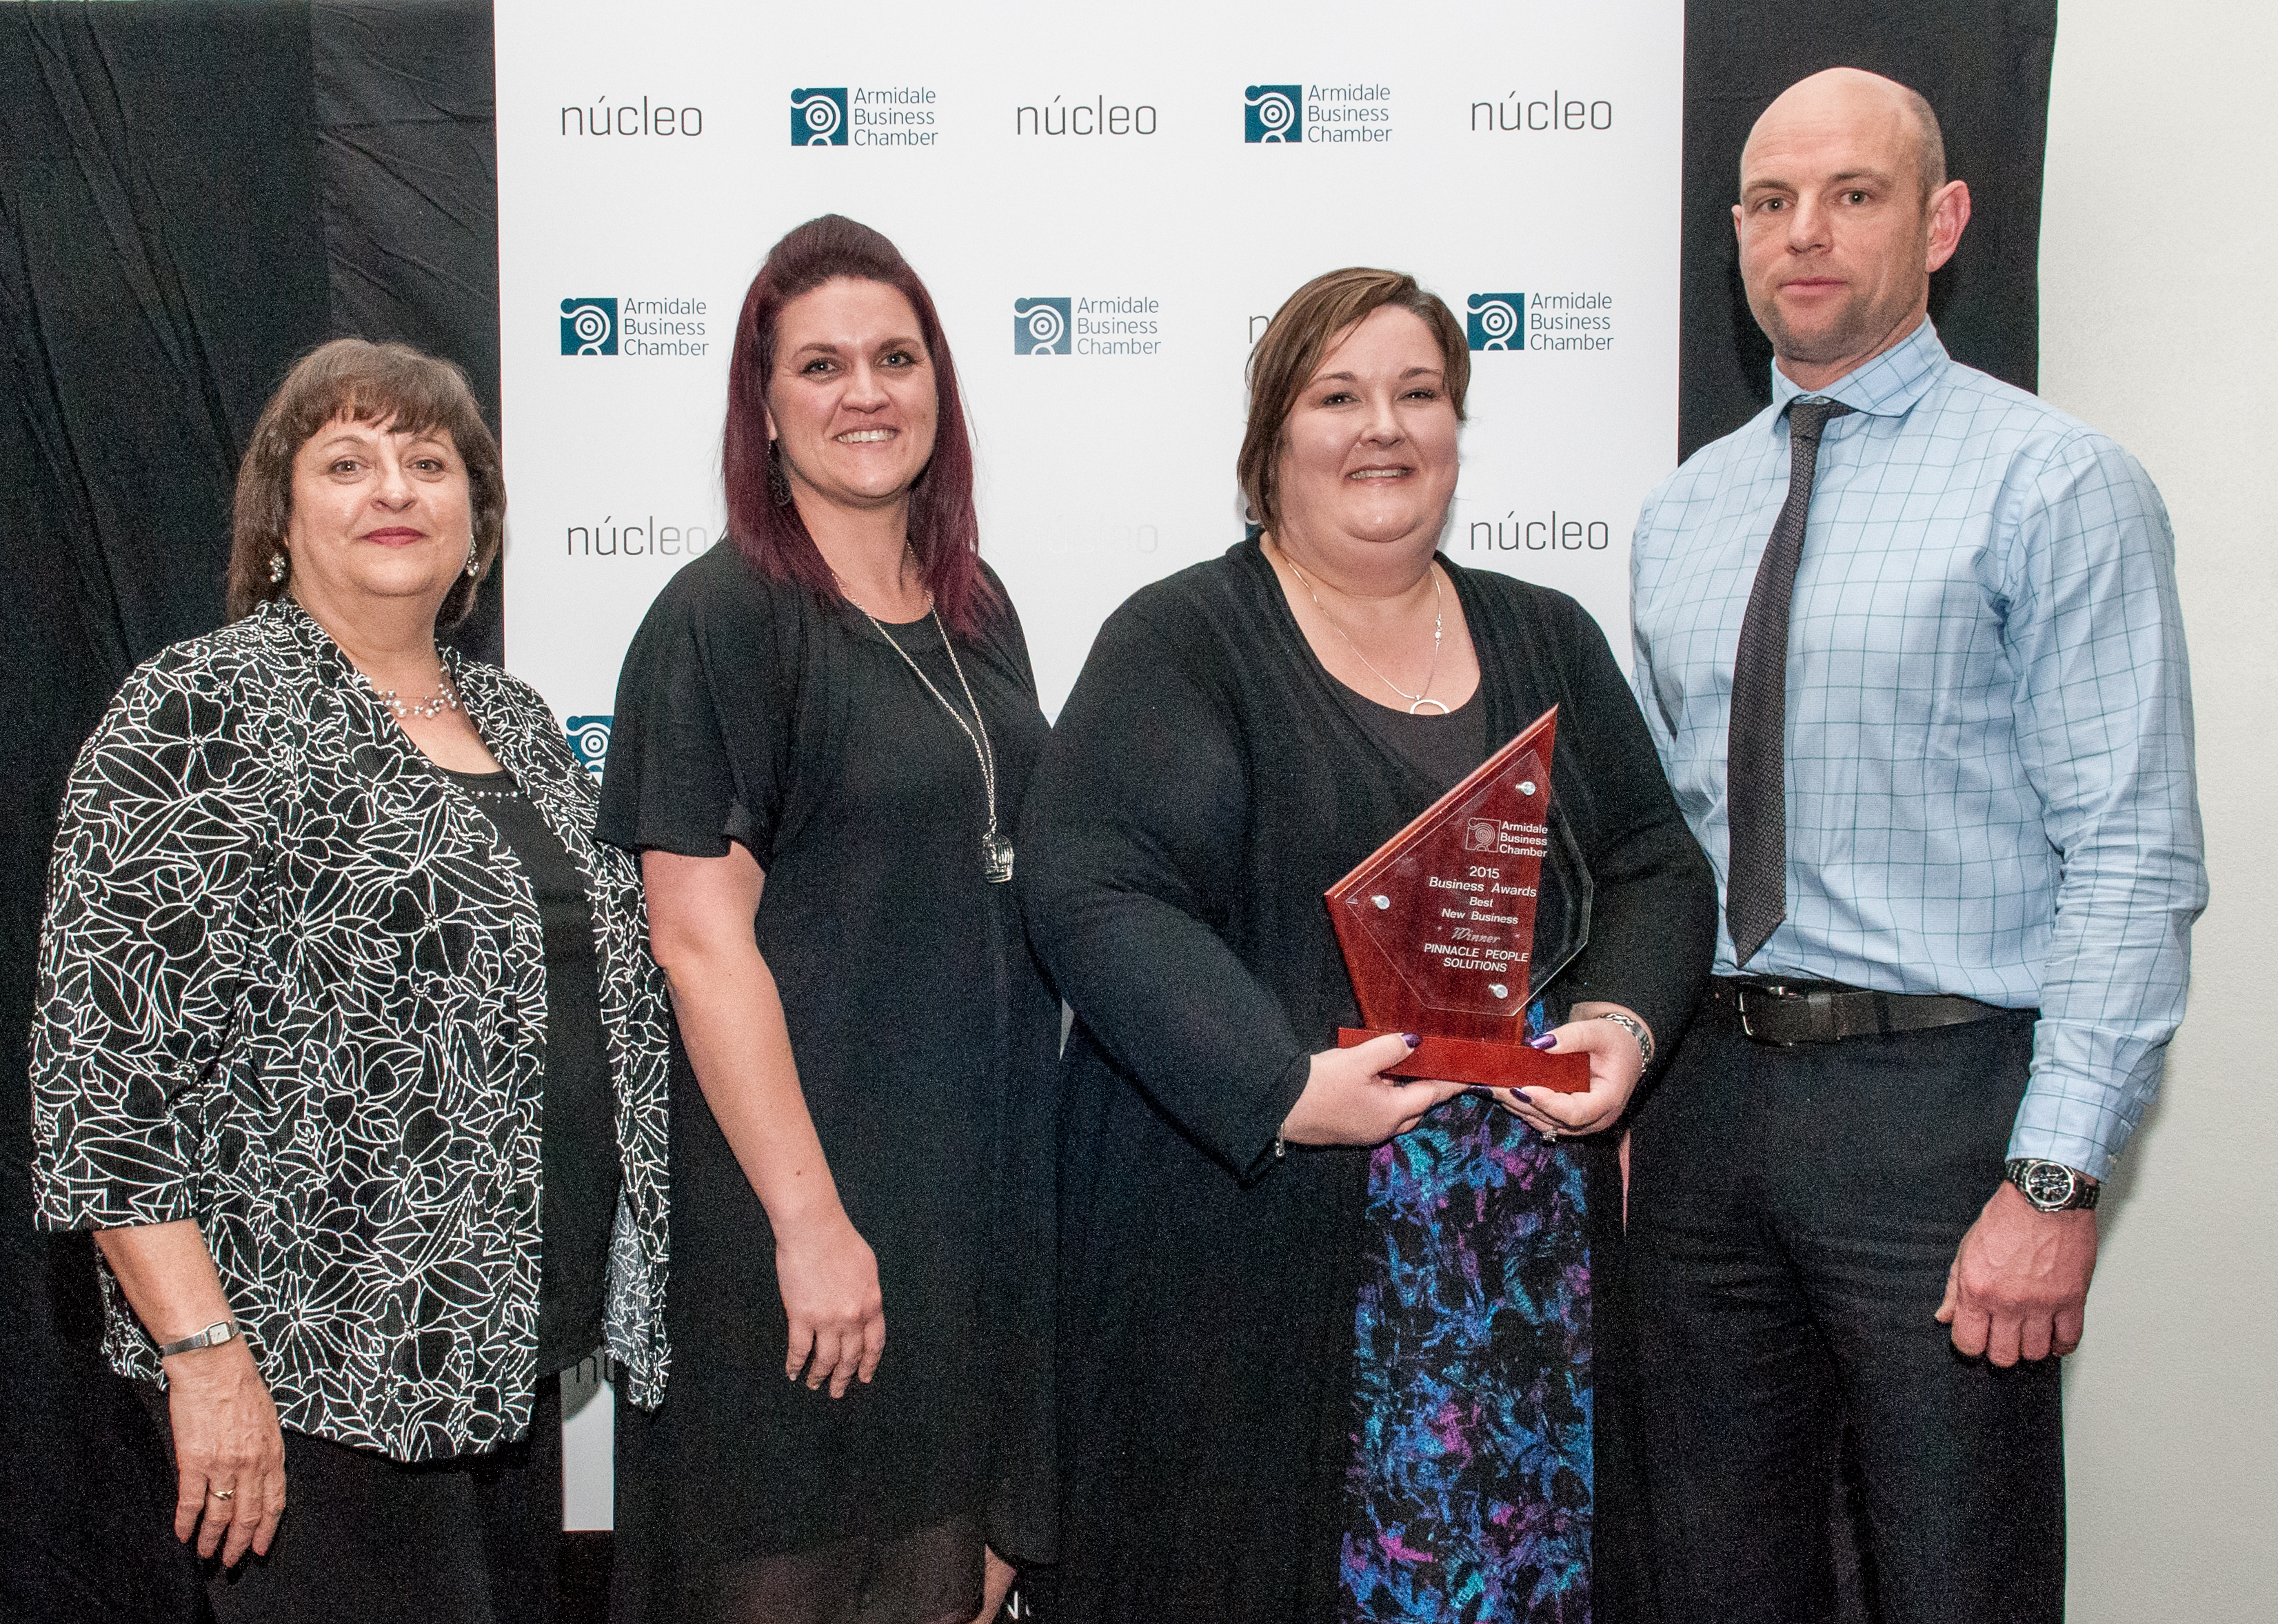 2015 Armidale Business Chamber Awards picture of PPS team and Sponsor Andrew Hall of Qantaslink